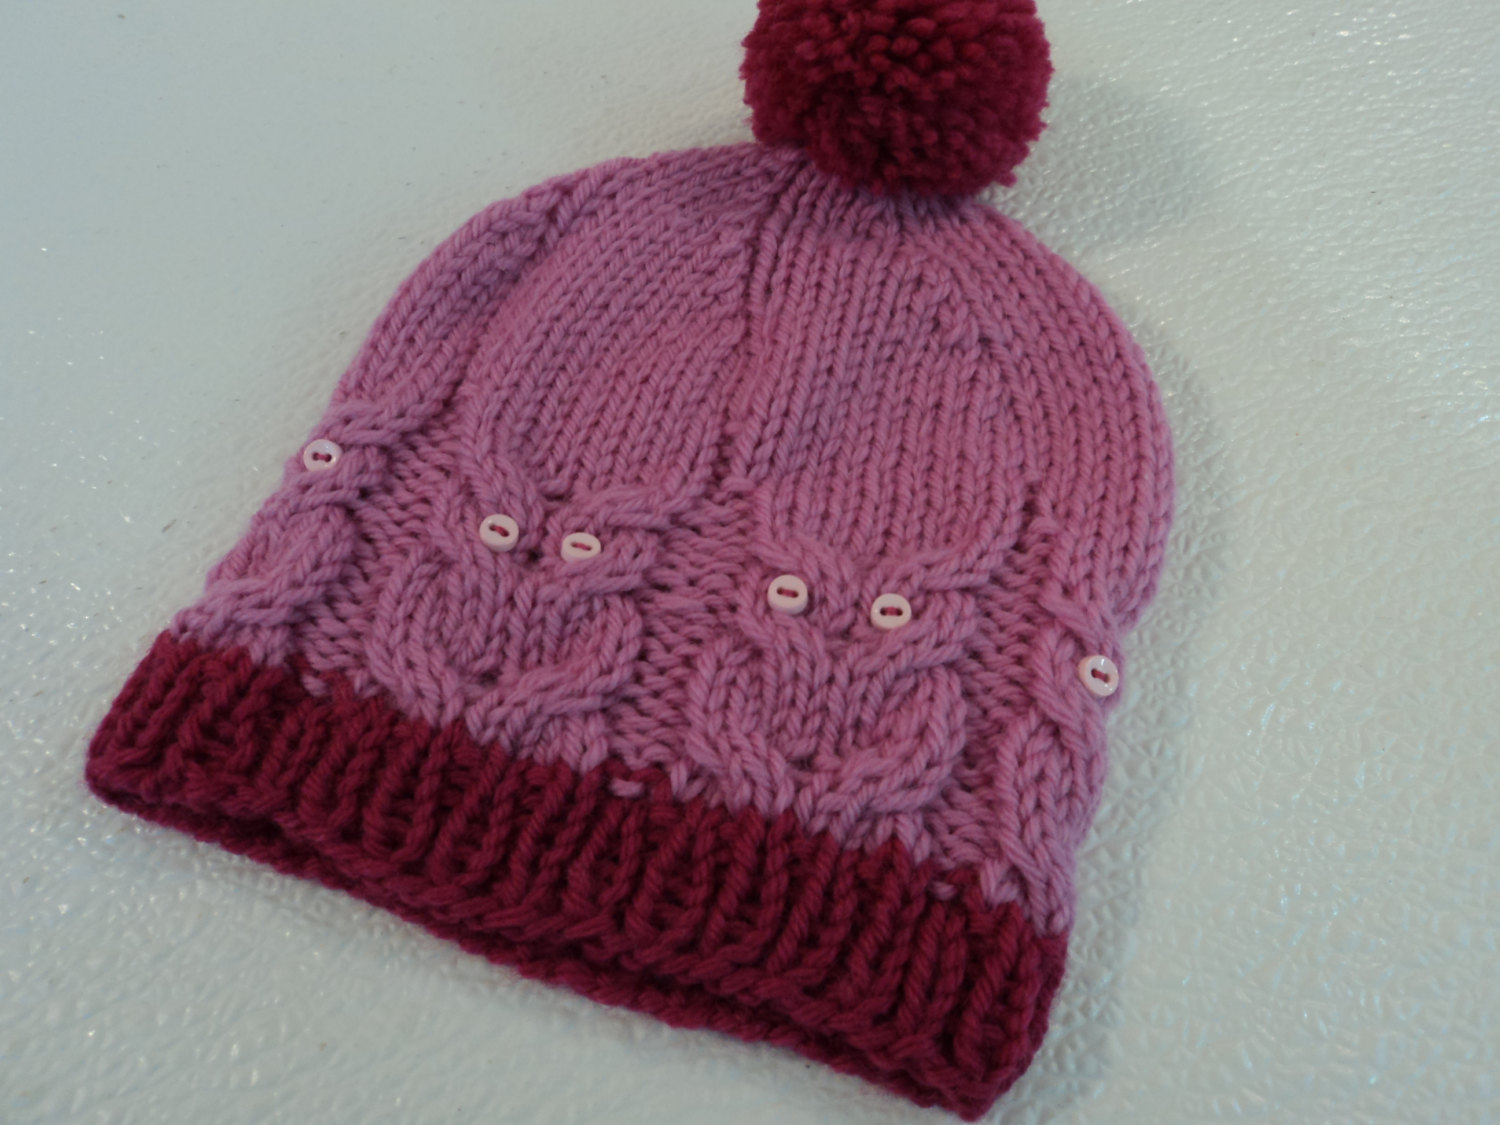 10bd0a58626 Handcrafted Knitted Baby Hat Pink Cranberry Pom Pom 100% Wool Female ...